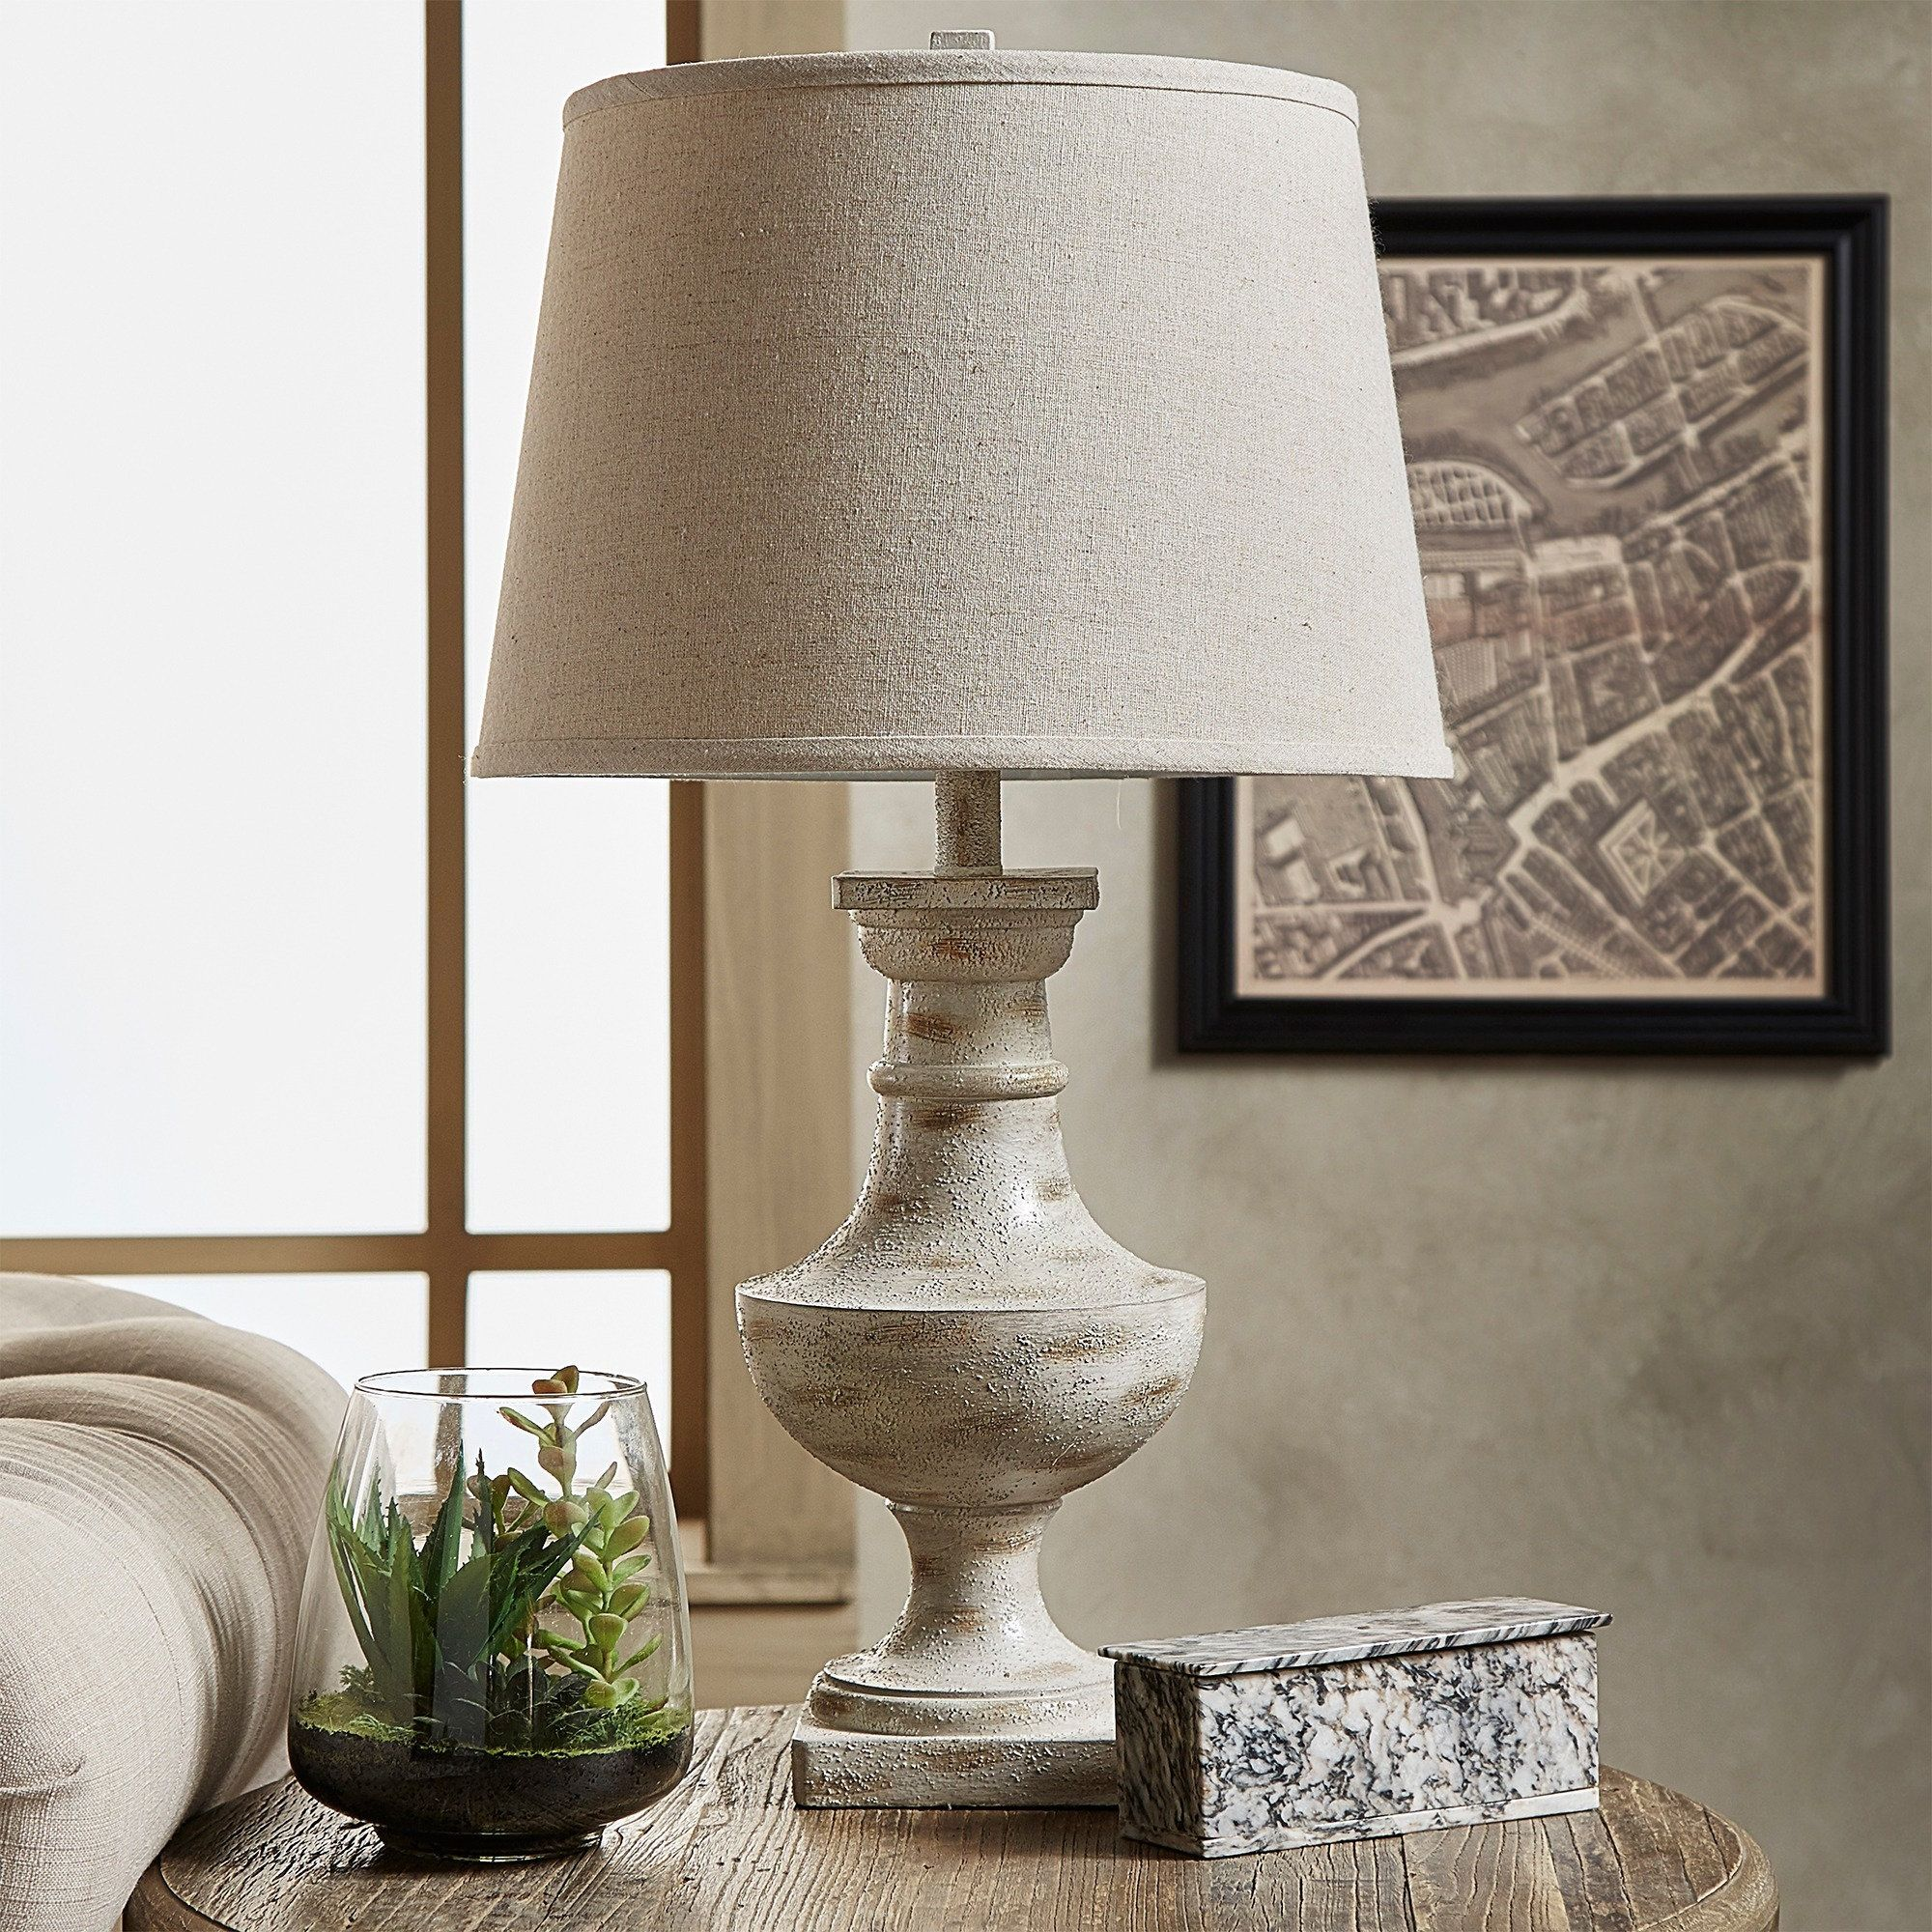 iron inspirational rings lamp of laptop lamps alemeda cheap rustic table luxury